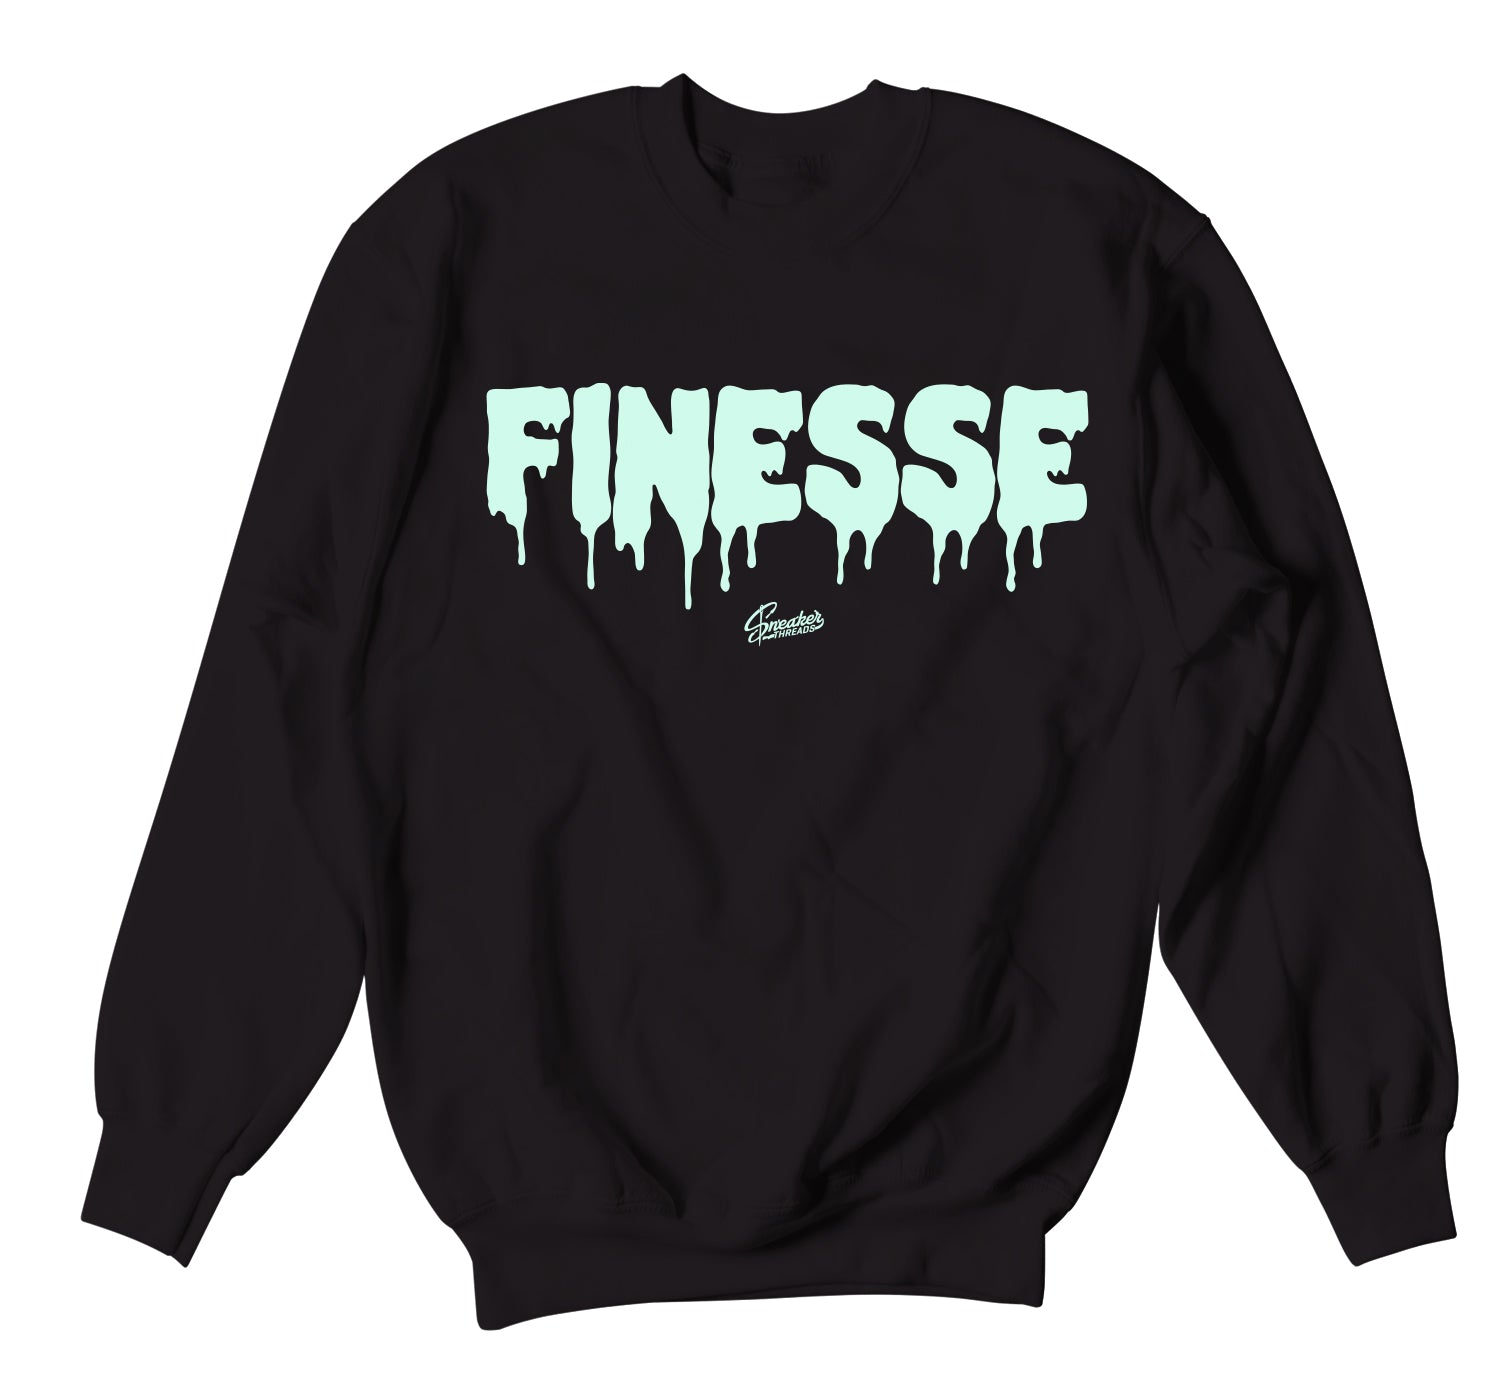 Barely Green All Star Sweater - Finesse - Black